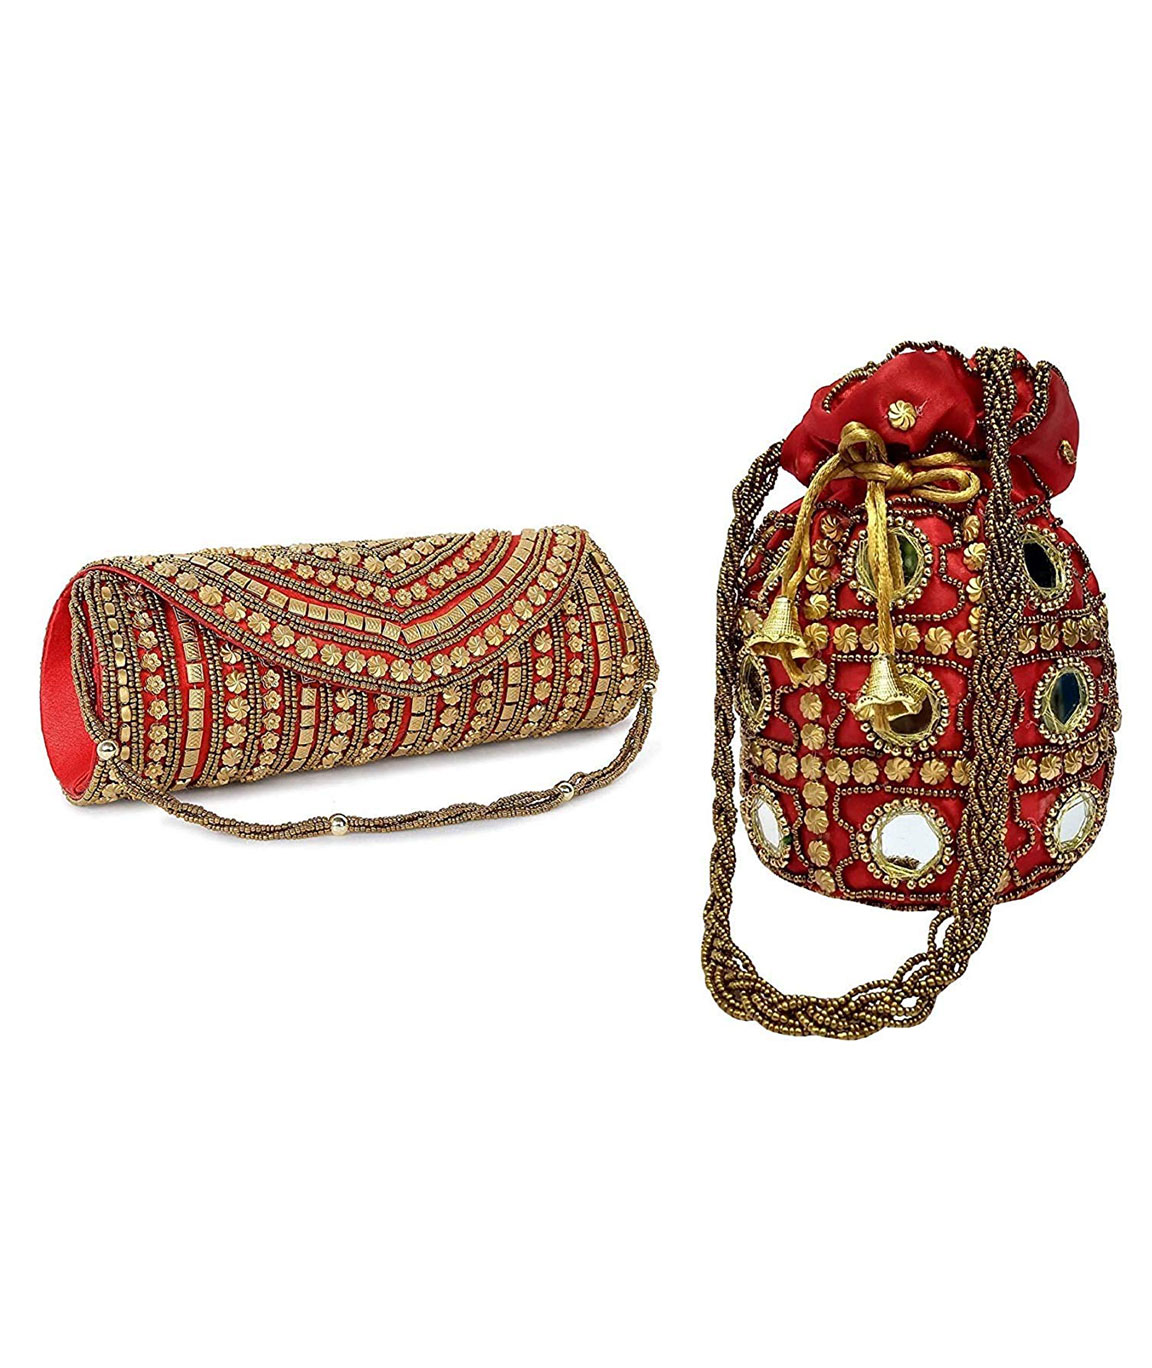 DN Enterprises Latest Potli & Clutch Combo For Women/Girls Fancy Potli Bag & Bridal Clutch